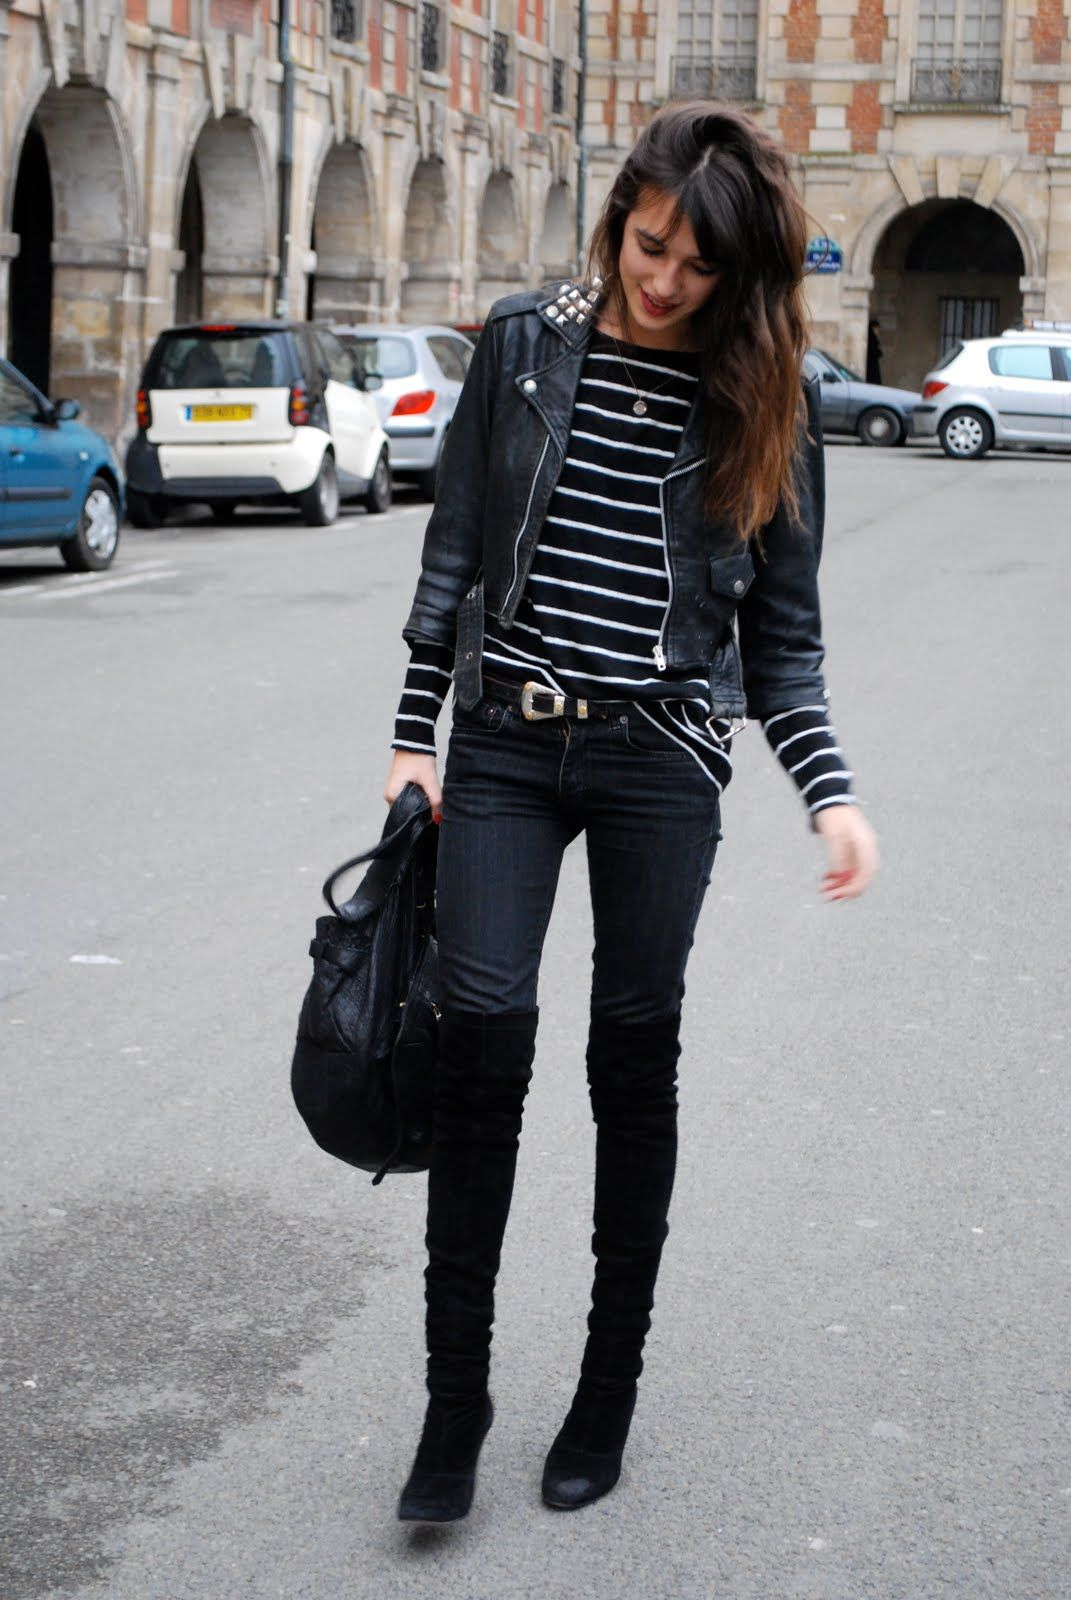 Lou - Love it all!! The stripes, suede over the knees, black leather jacket ♡♡